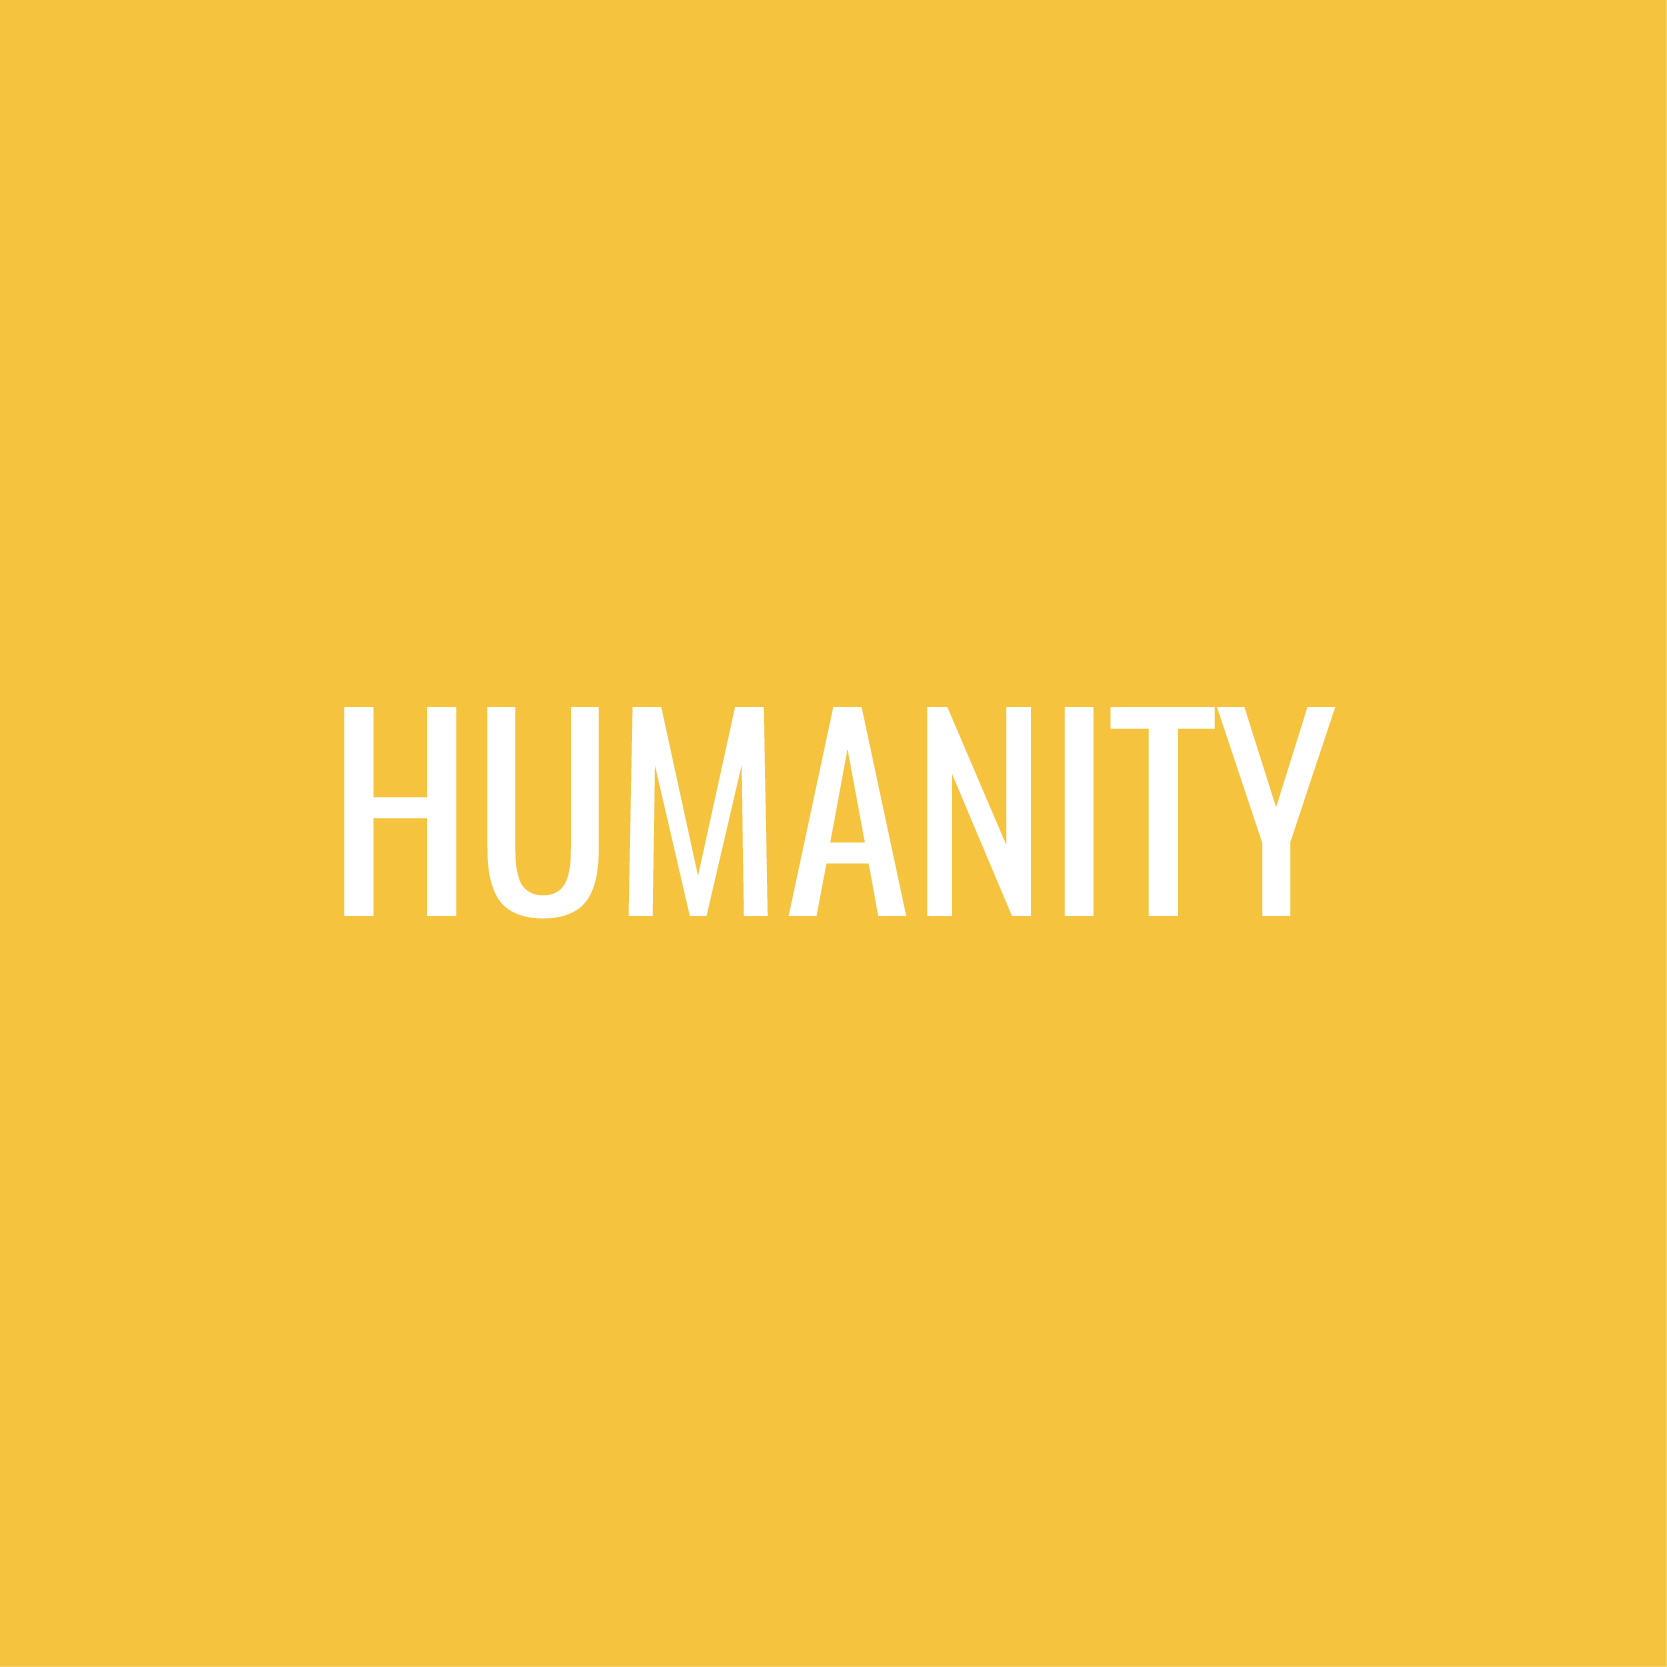 Humanity-03.png